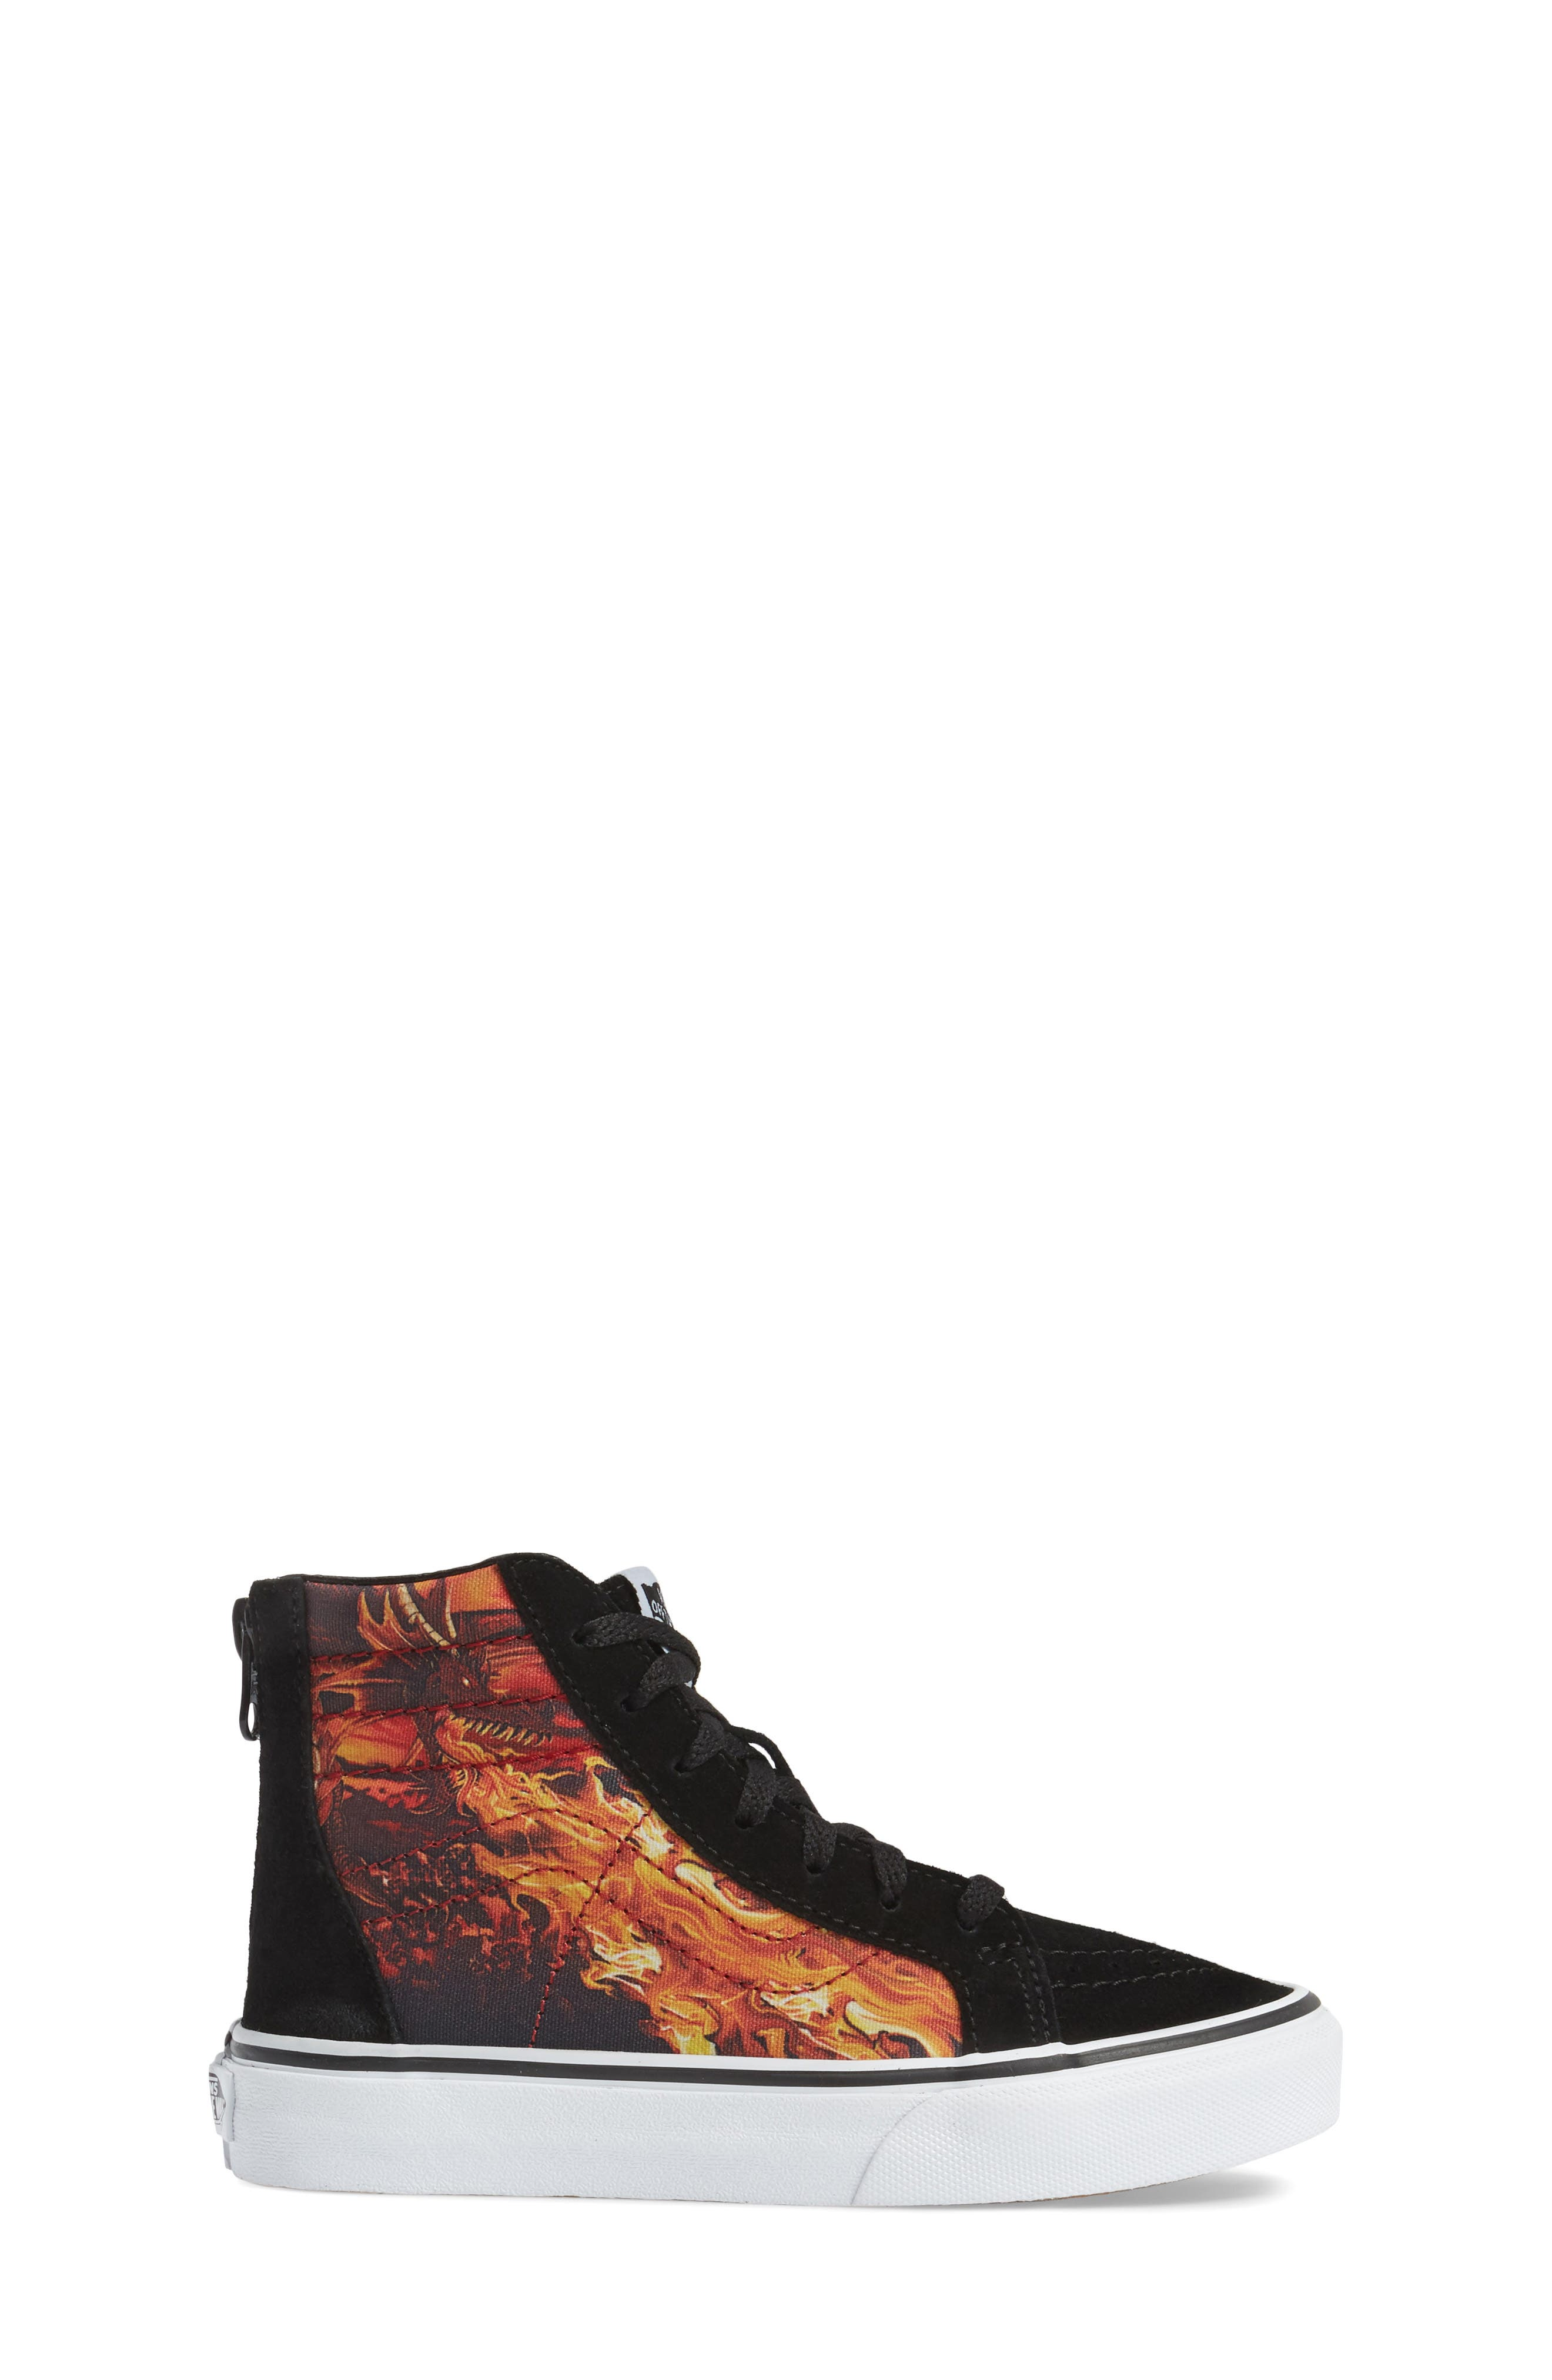 SK8-Hi Dragon Zip Sneaker,                             Alternate thumbnail 3, color,